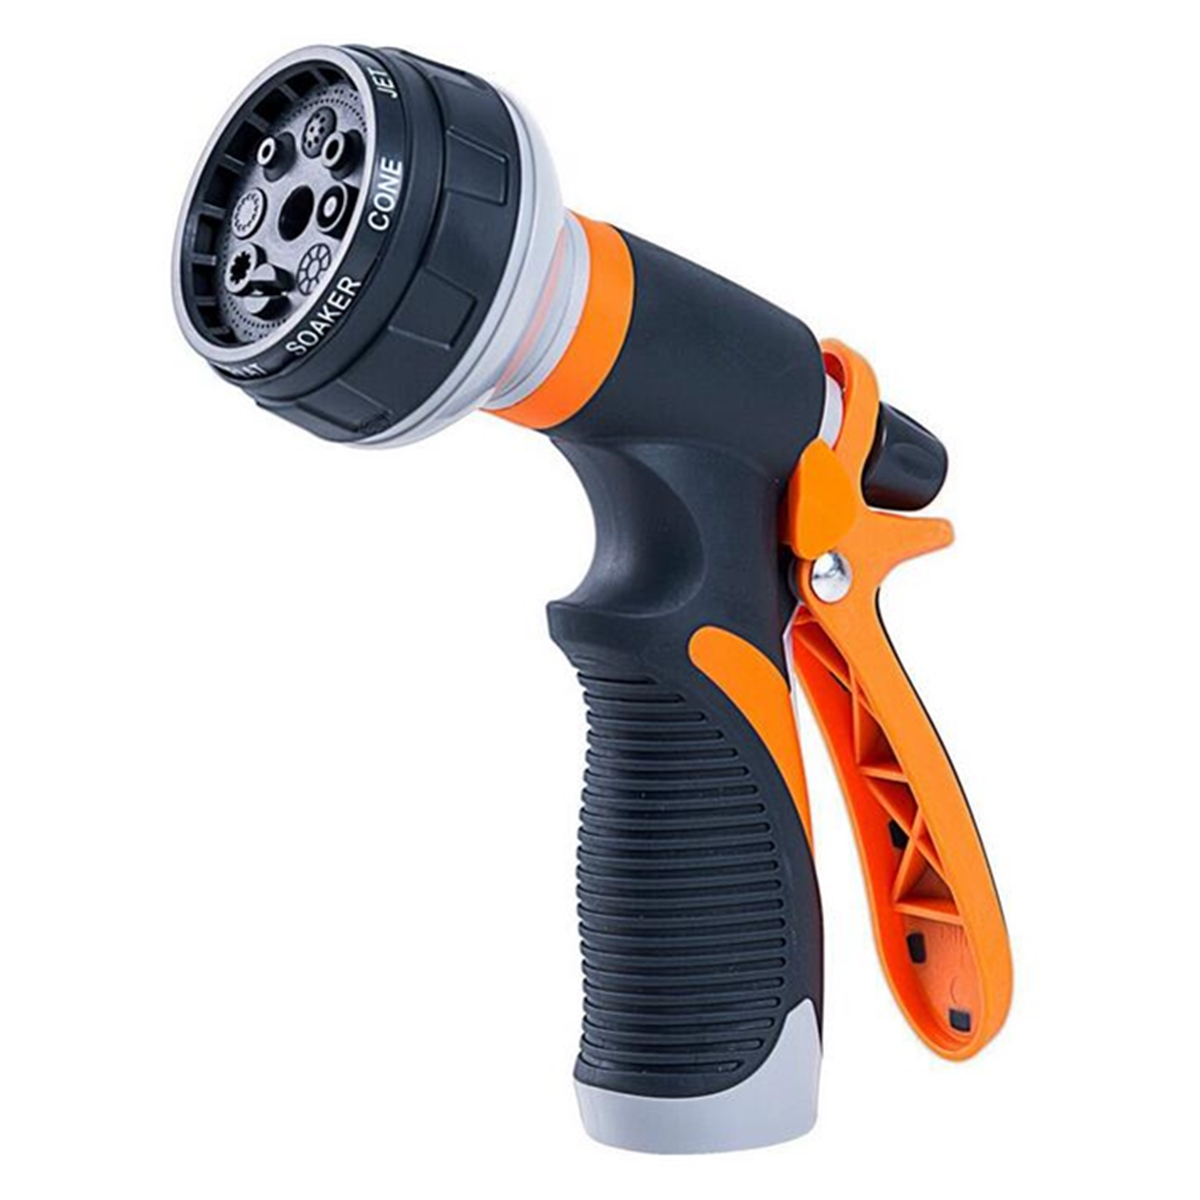 1PC Spray Lawn Watering Multi-function Car Wash High Pressure Durable Hand-held Hose Sprinkle Water Nozzle Garden Sprinkle Tools